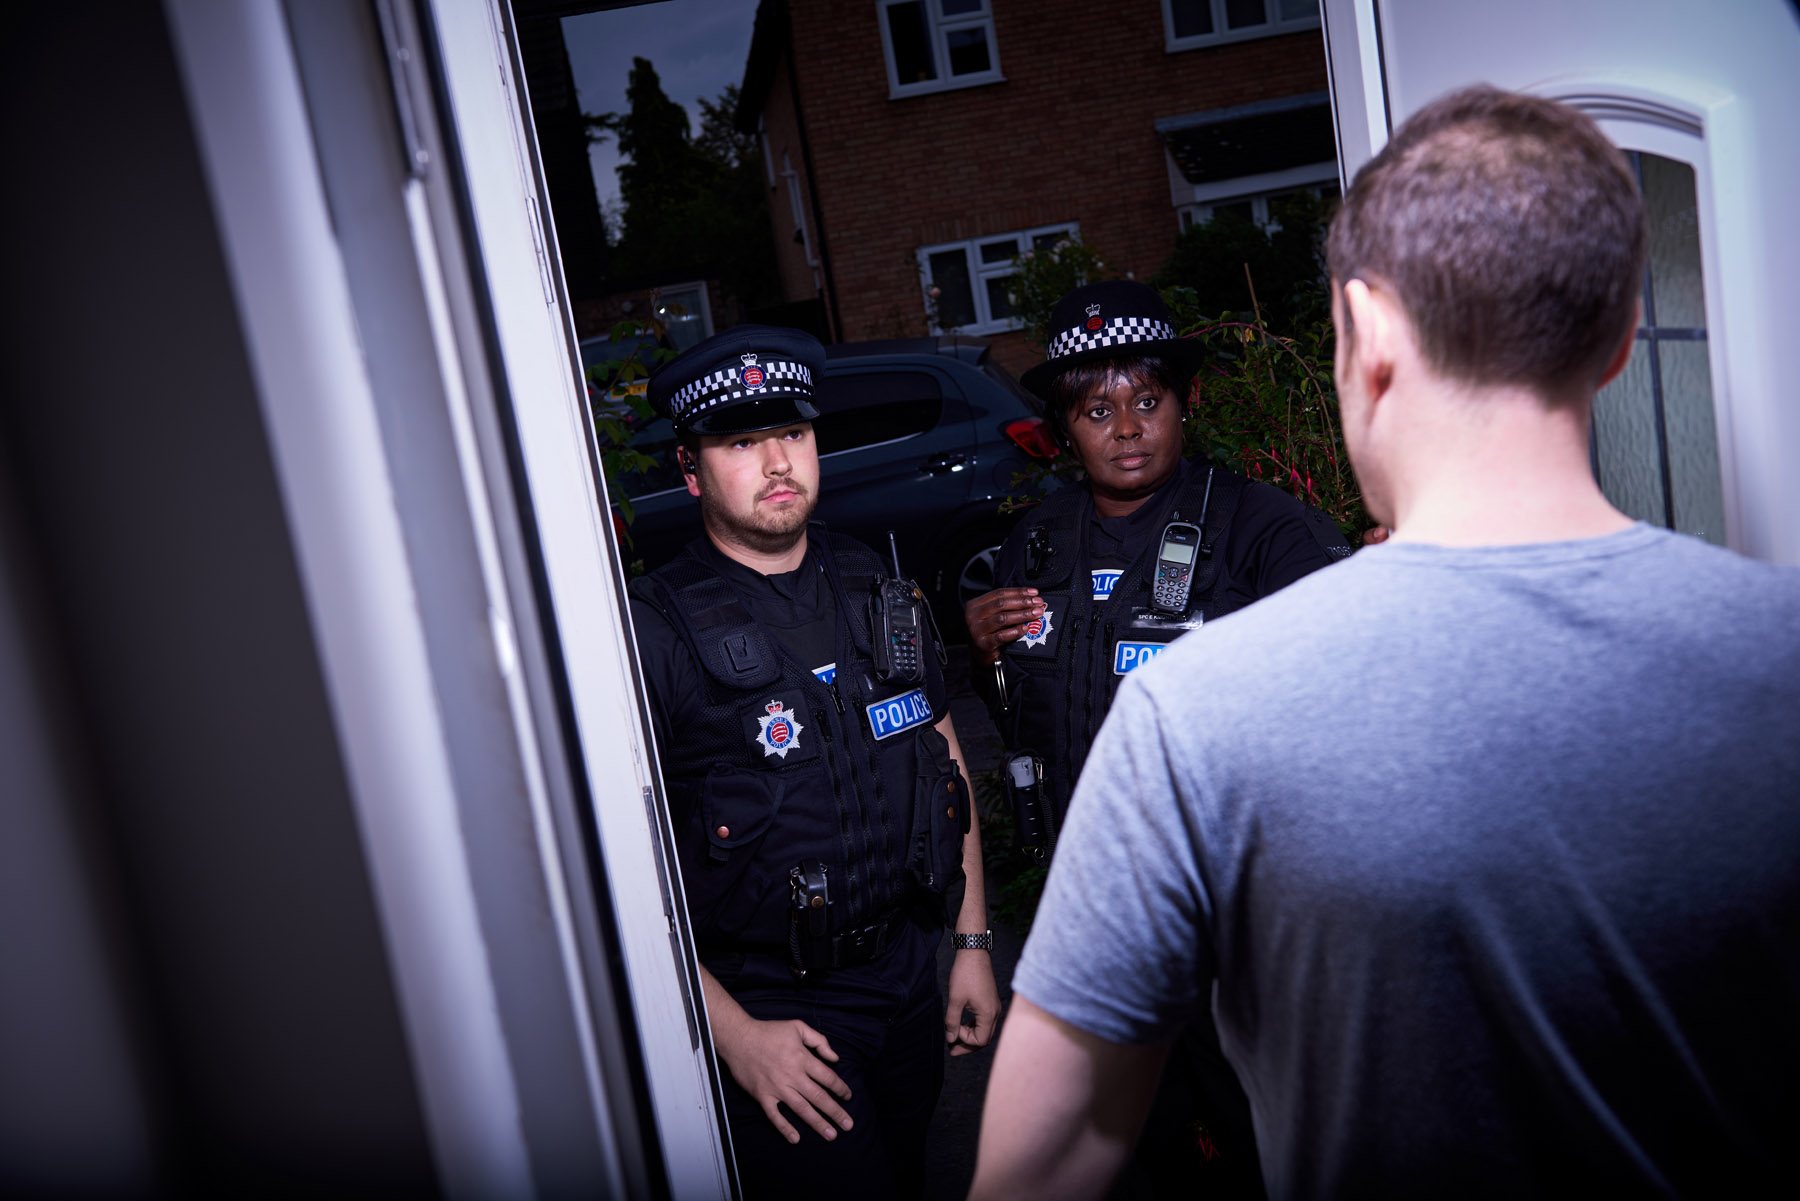 Policer arrive at a house